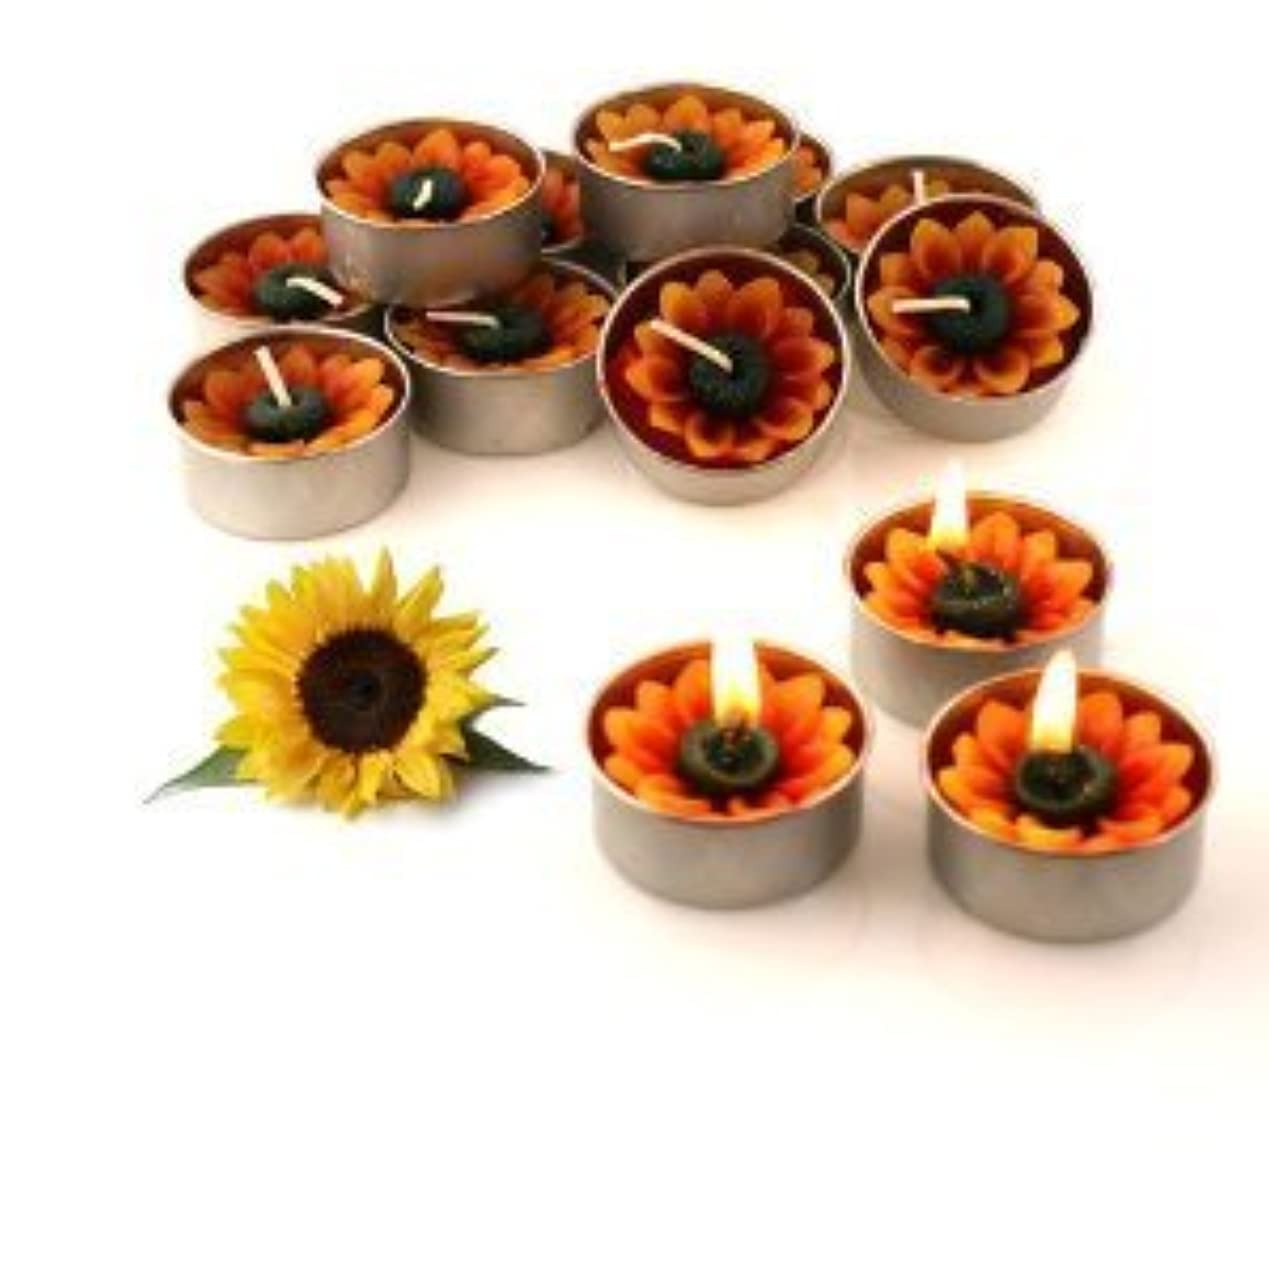 富豪願う思いつくRelax Spa Shop @ Sun Flower Candle in Tea Lights , Floating Candles, Scented Tea Lights ,Aromatherapy Relax (Sun...